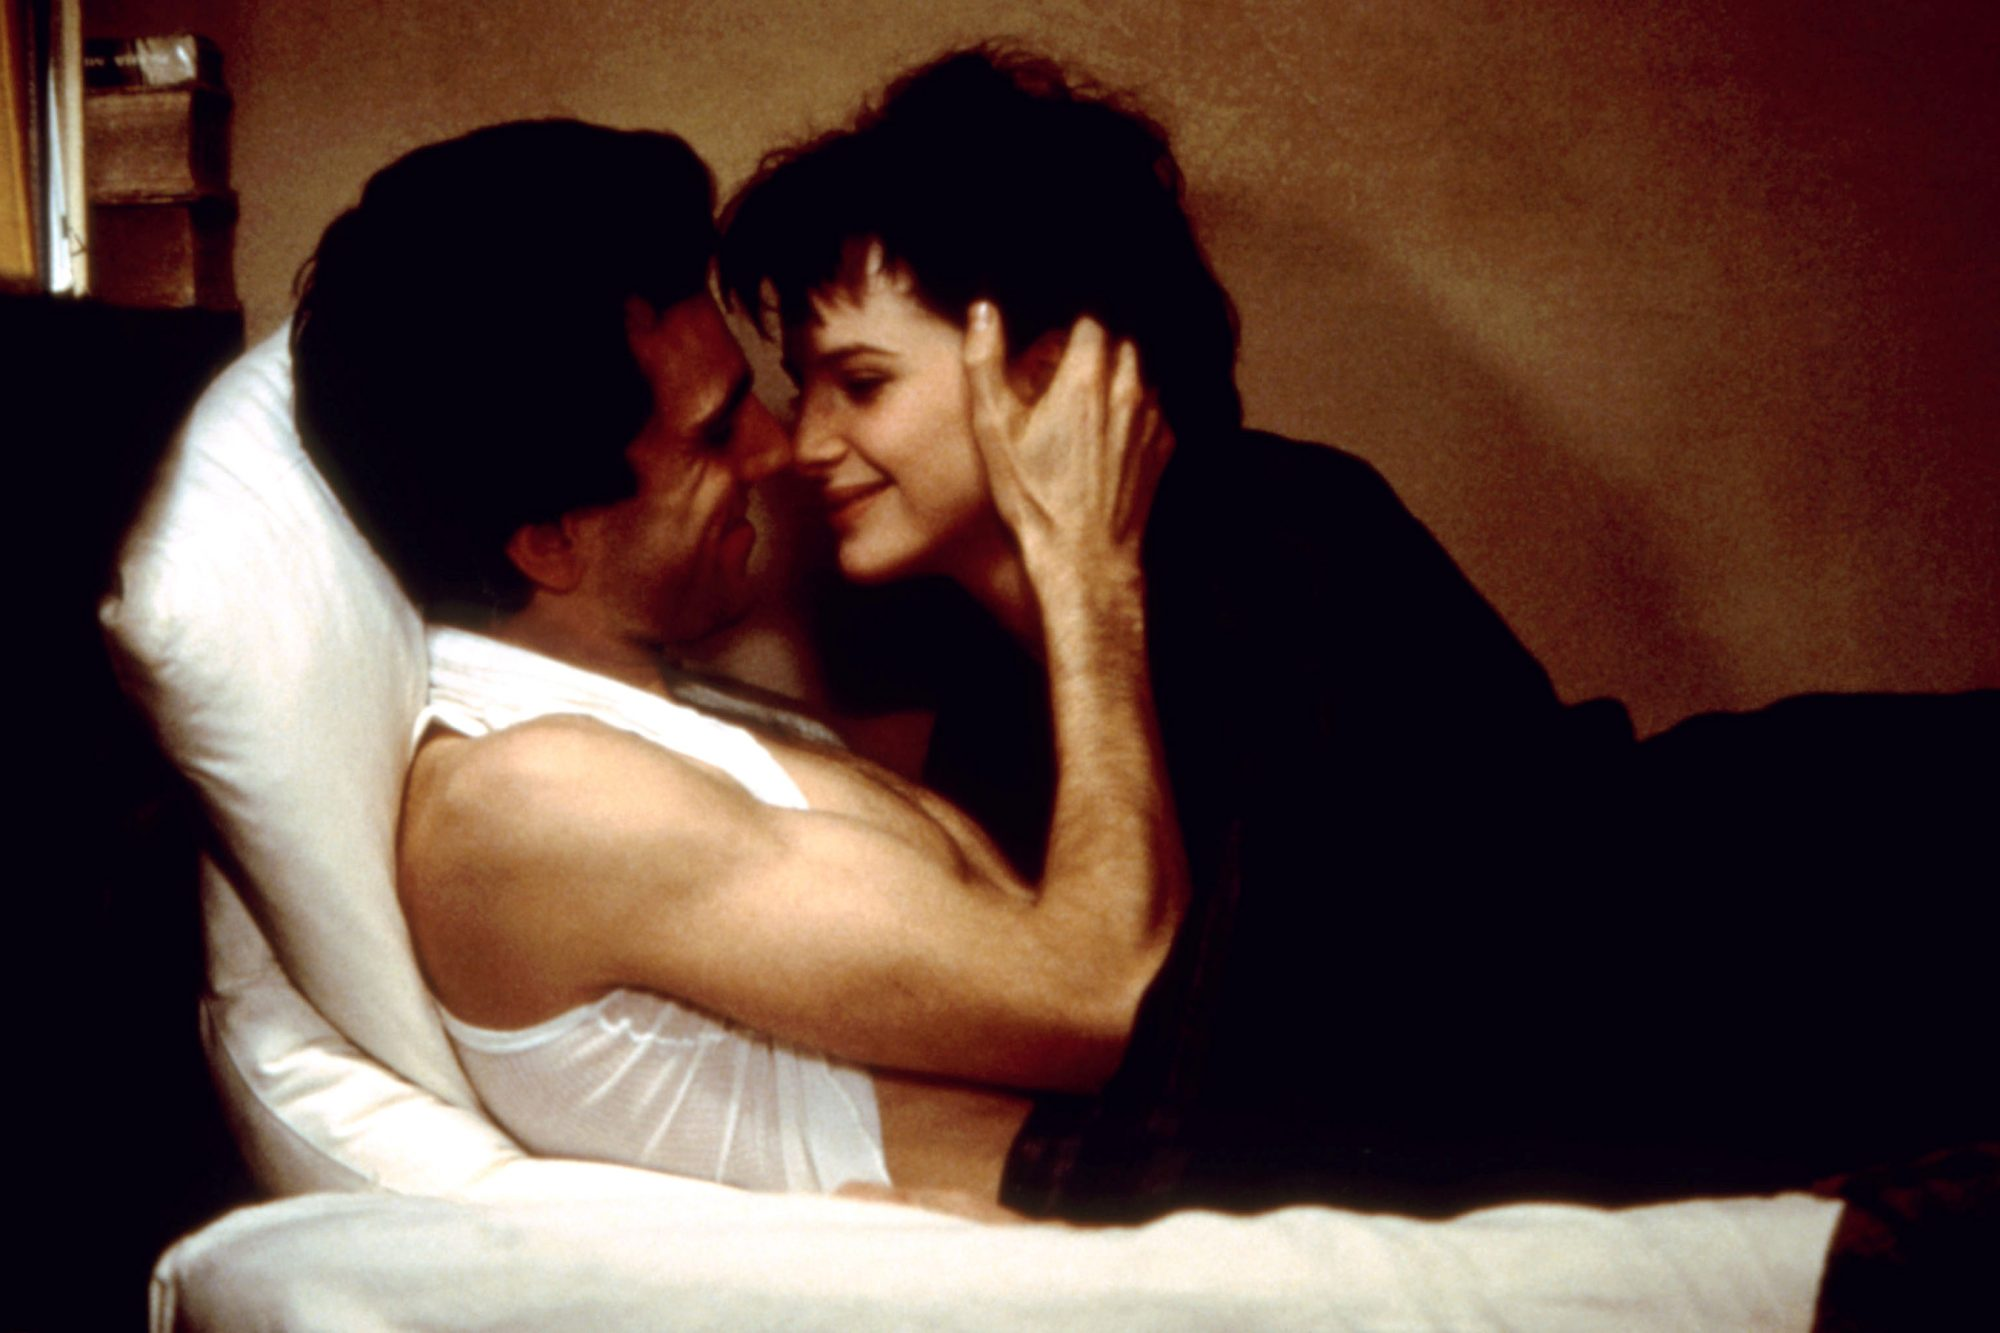 8. The Unbearable Lightness of Being (1988)